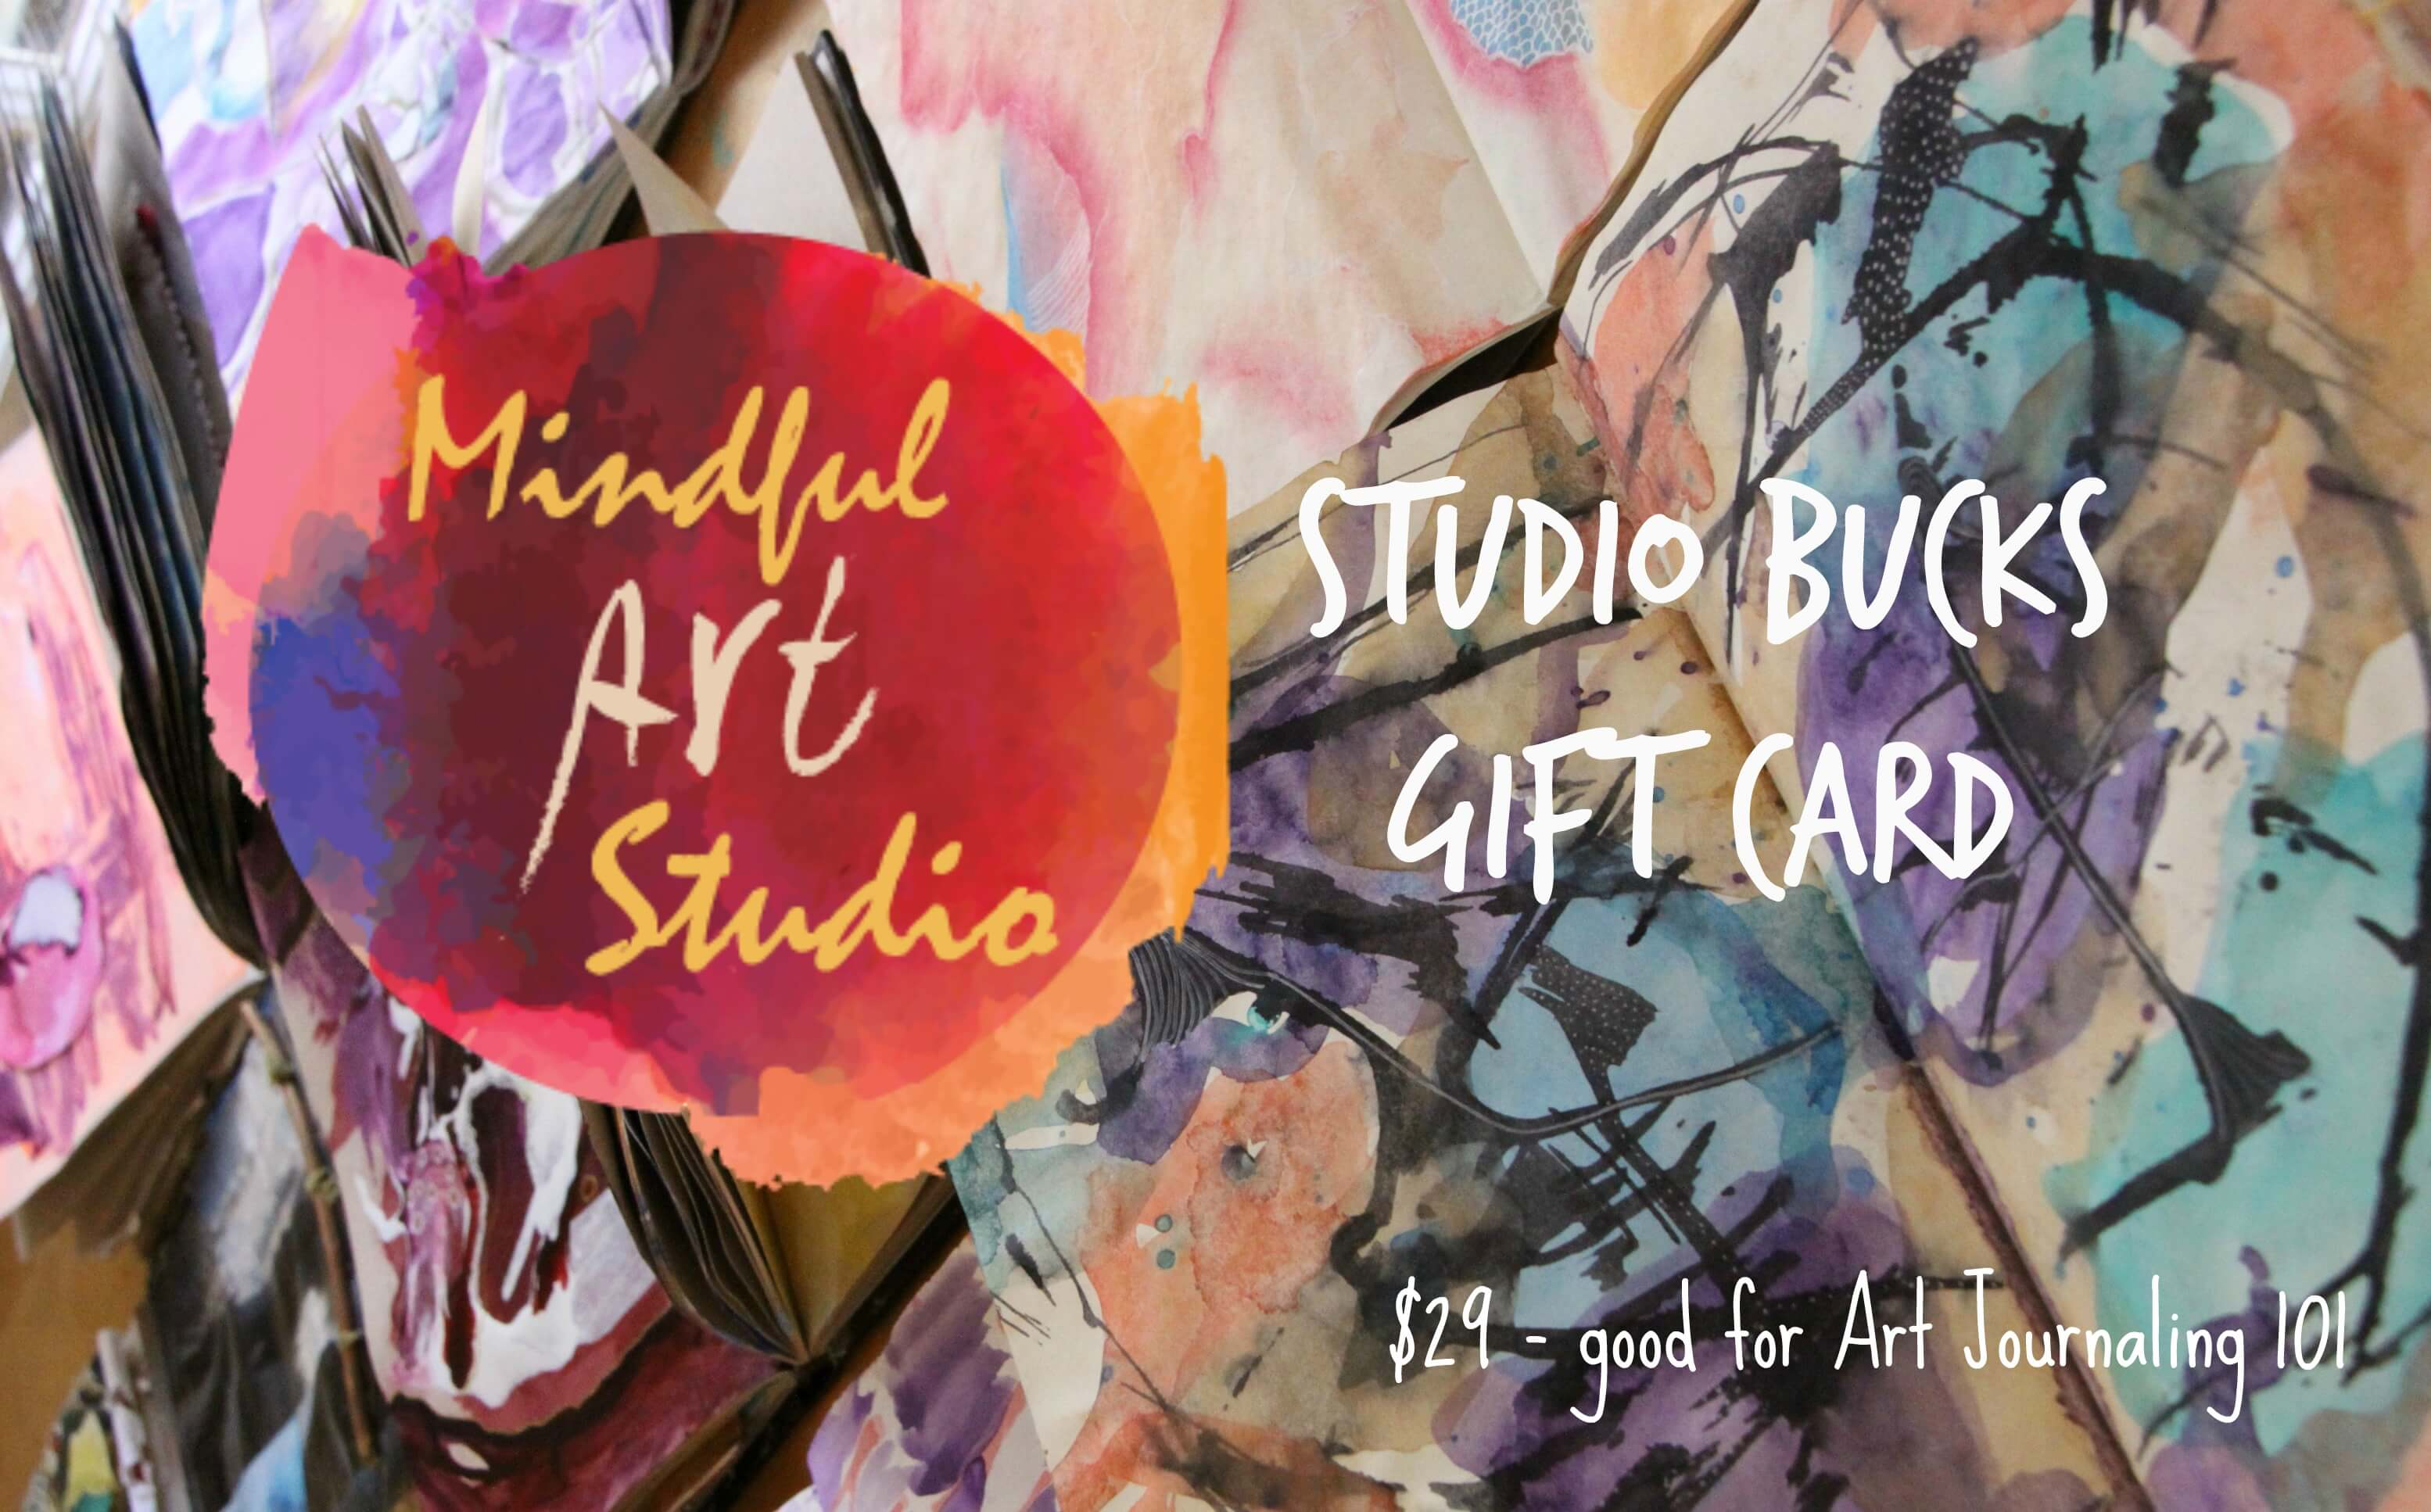 Holiday Gift Guide for Art Journaling